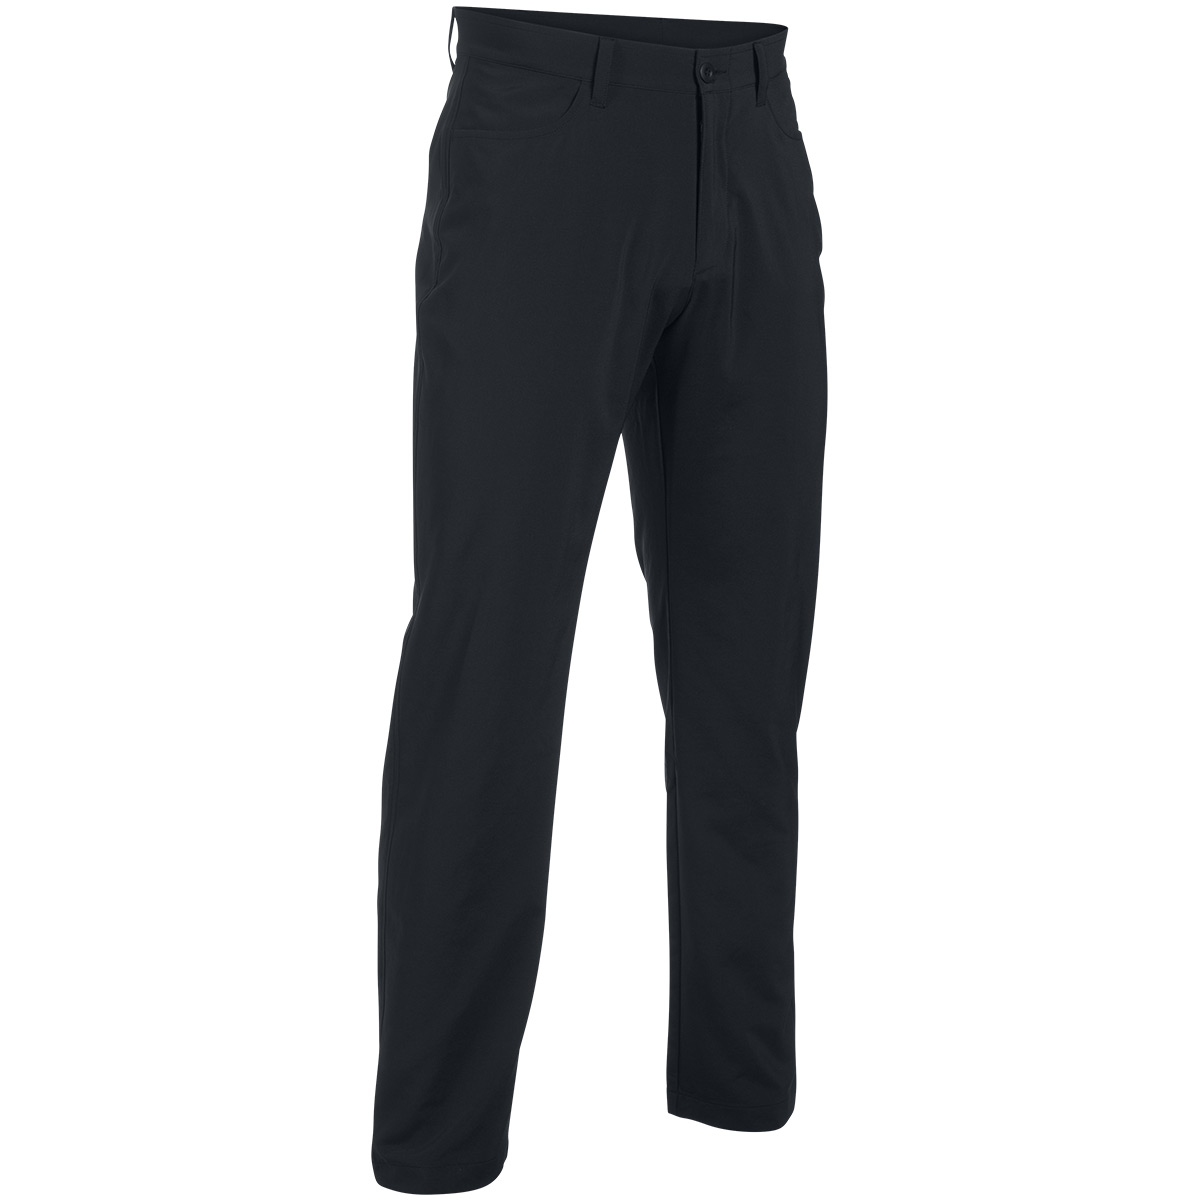 Under-Armour-Mens-Tech-Pant-Soft-Stretch-Golf-Trousers-31-OFF-RRP thumbnail 7